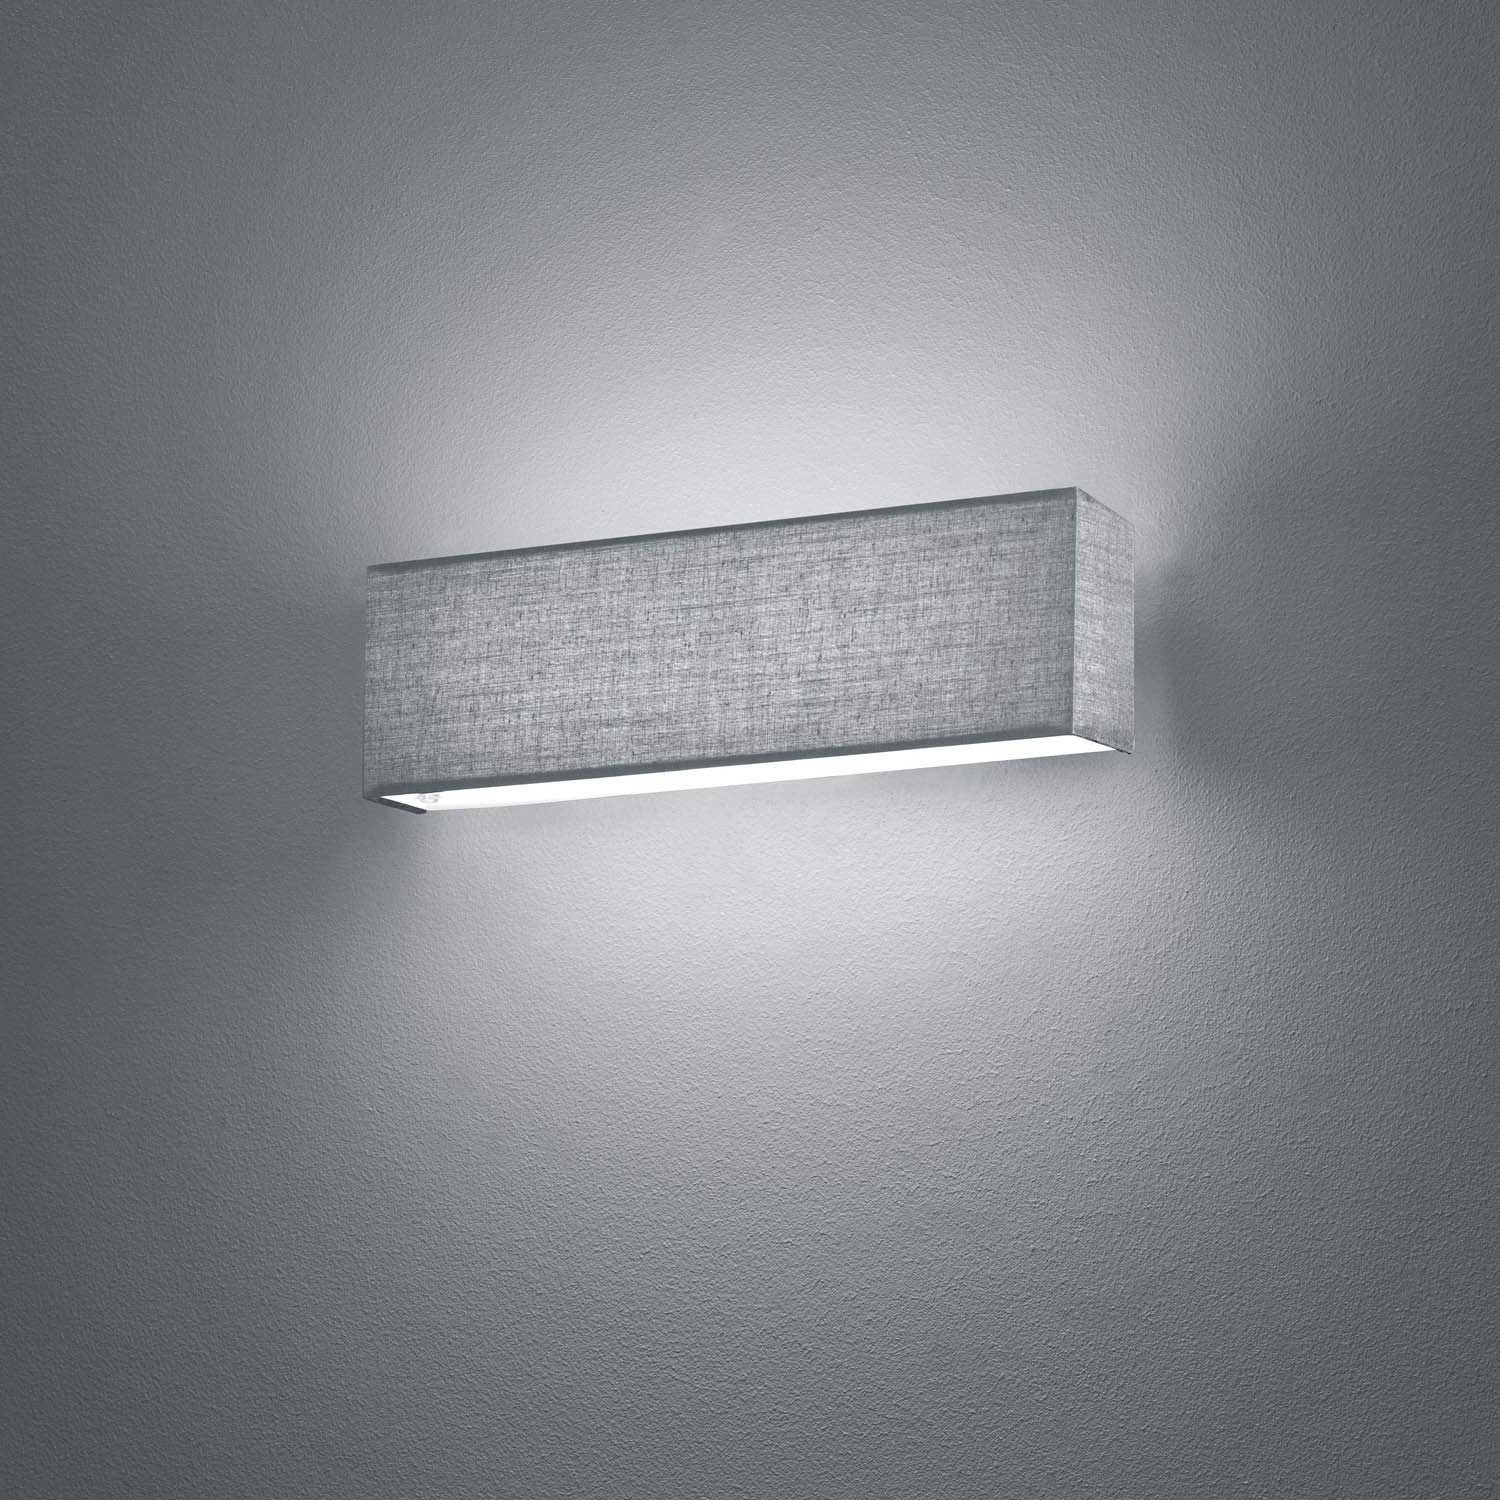 Aplique de pared led carlo 6w gris for Gris verdoso pared